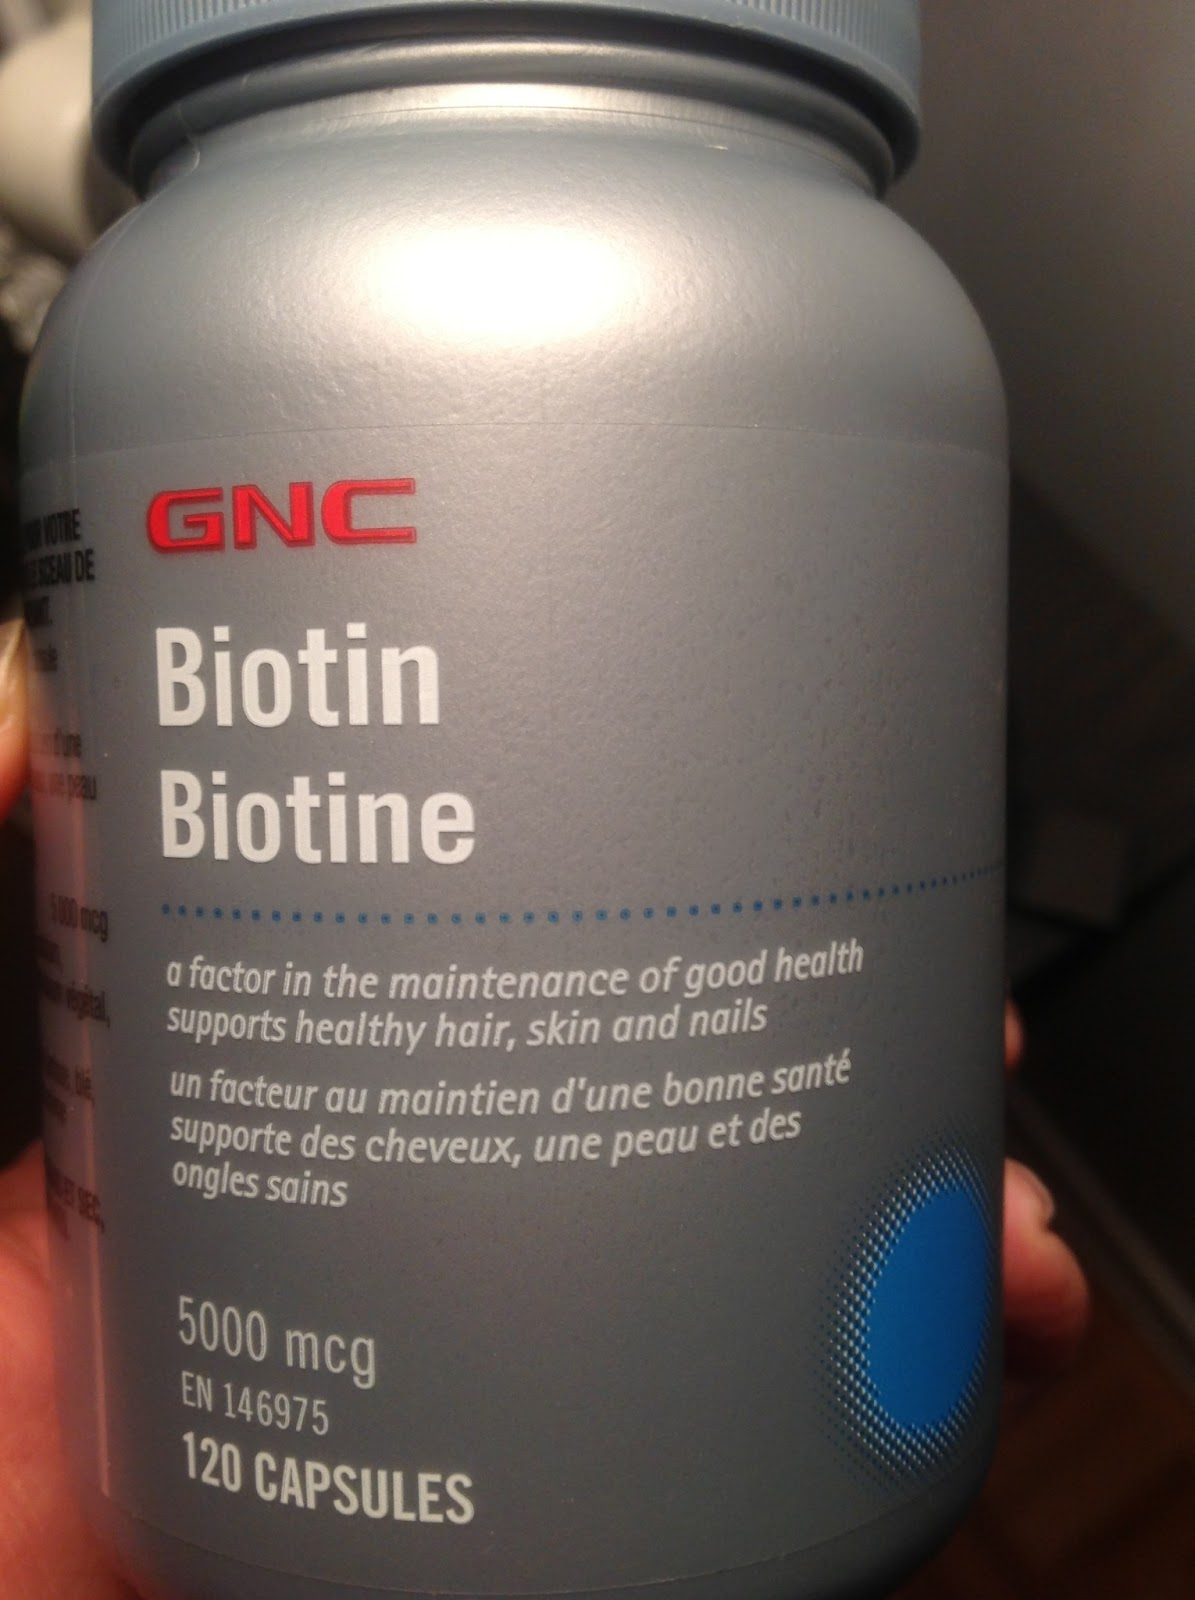 Diary Of A Trendaholic : Biotin For Hair Growth, Strong